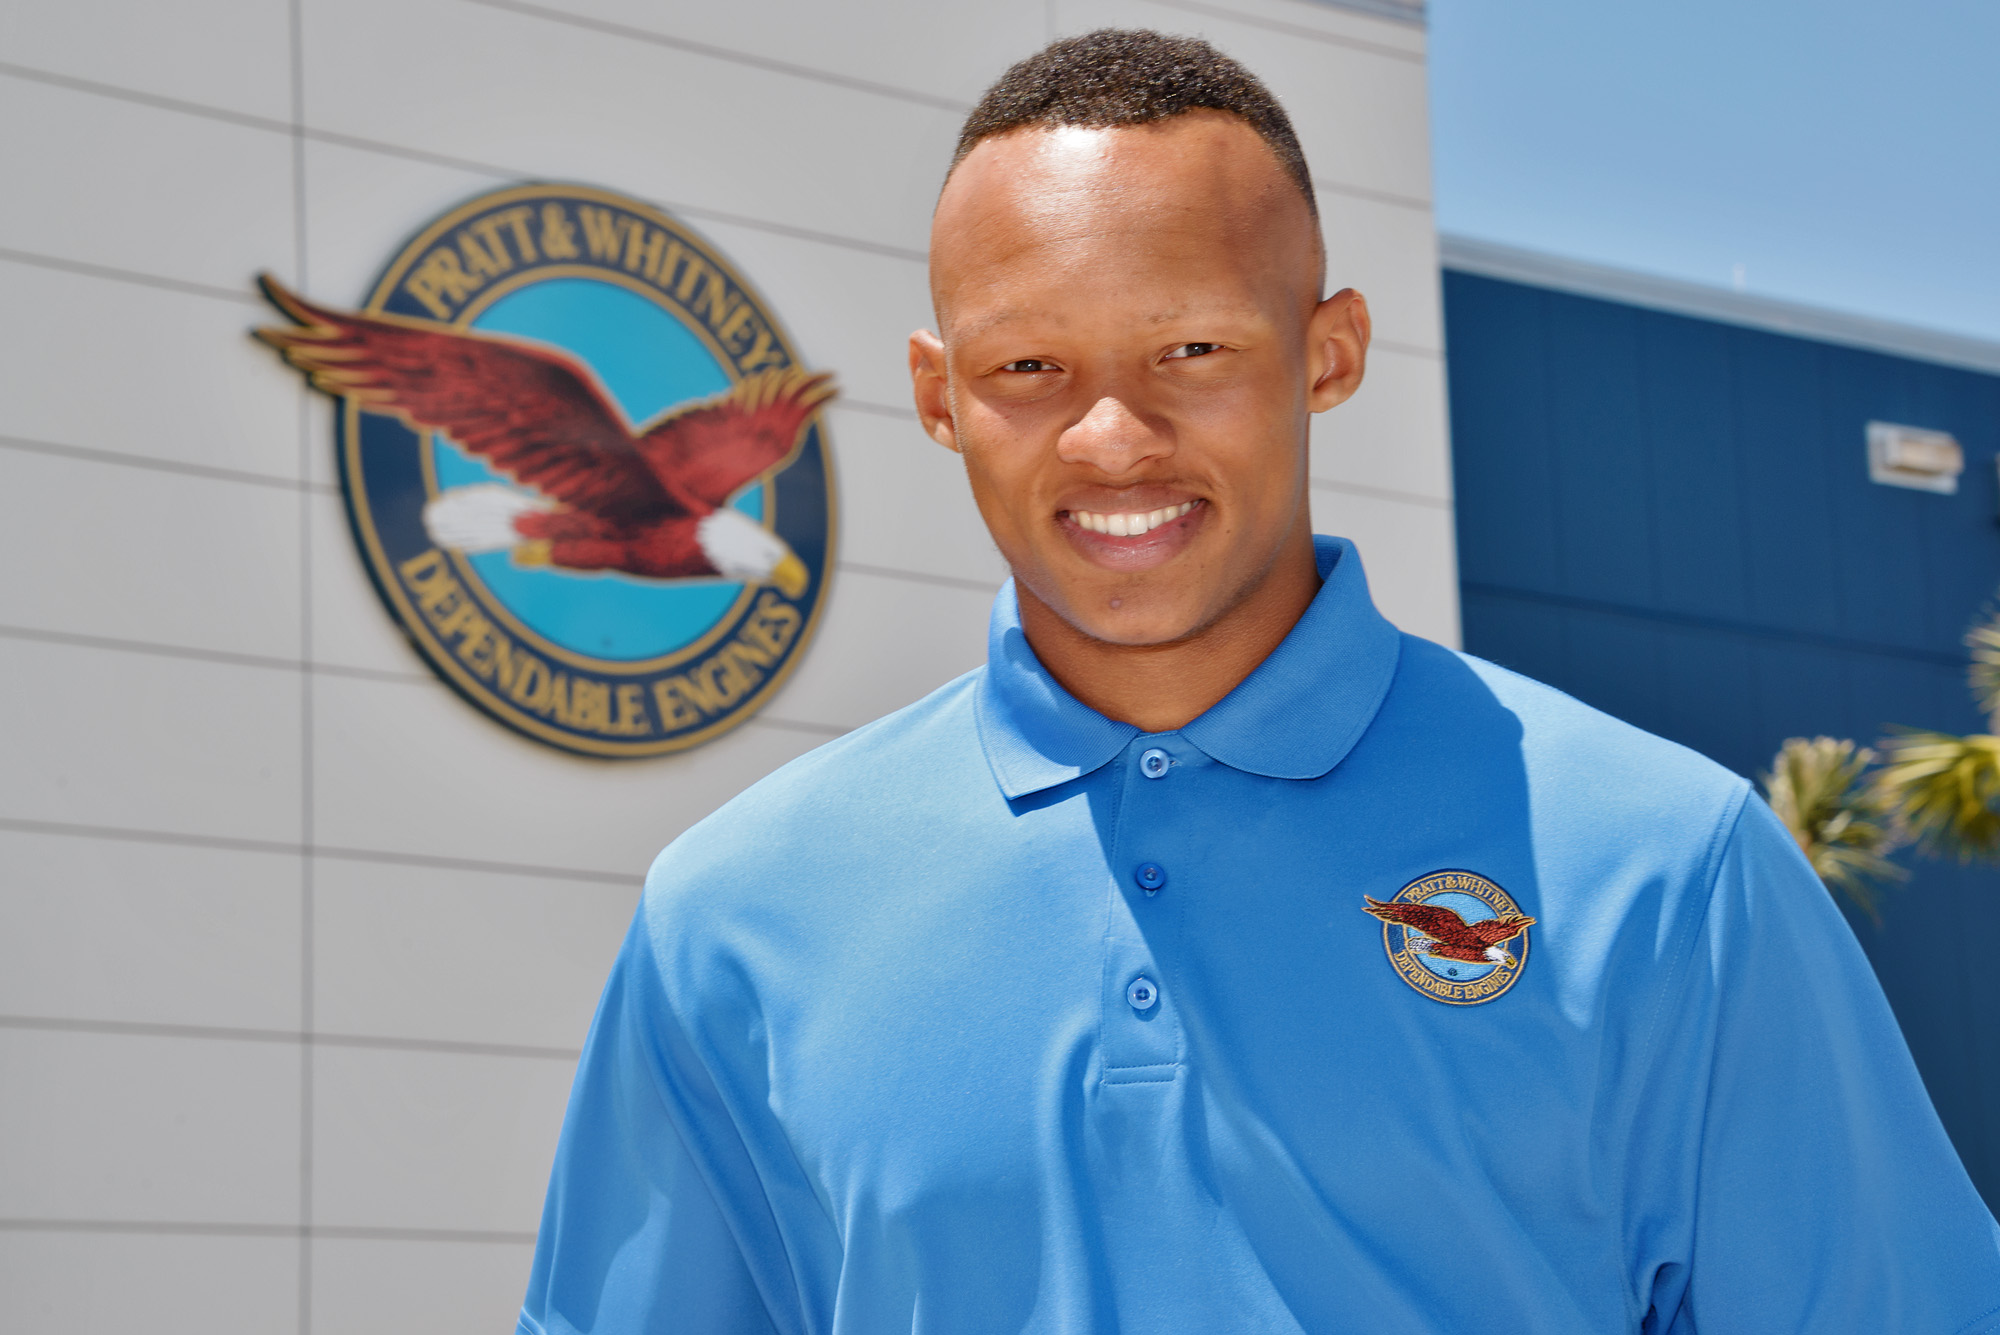 In this May 27, 2015 photo provided by Pratt & Whitney, Tennessee quarterback Joshua Dobbs is shown at the Pratt & Whitney facility in West Palm Beach, Fla. Dobbs traveled to the facility in May to work an internship testing aircraft engines at Pratt & Wh